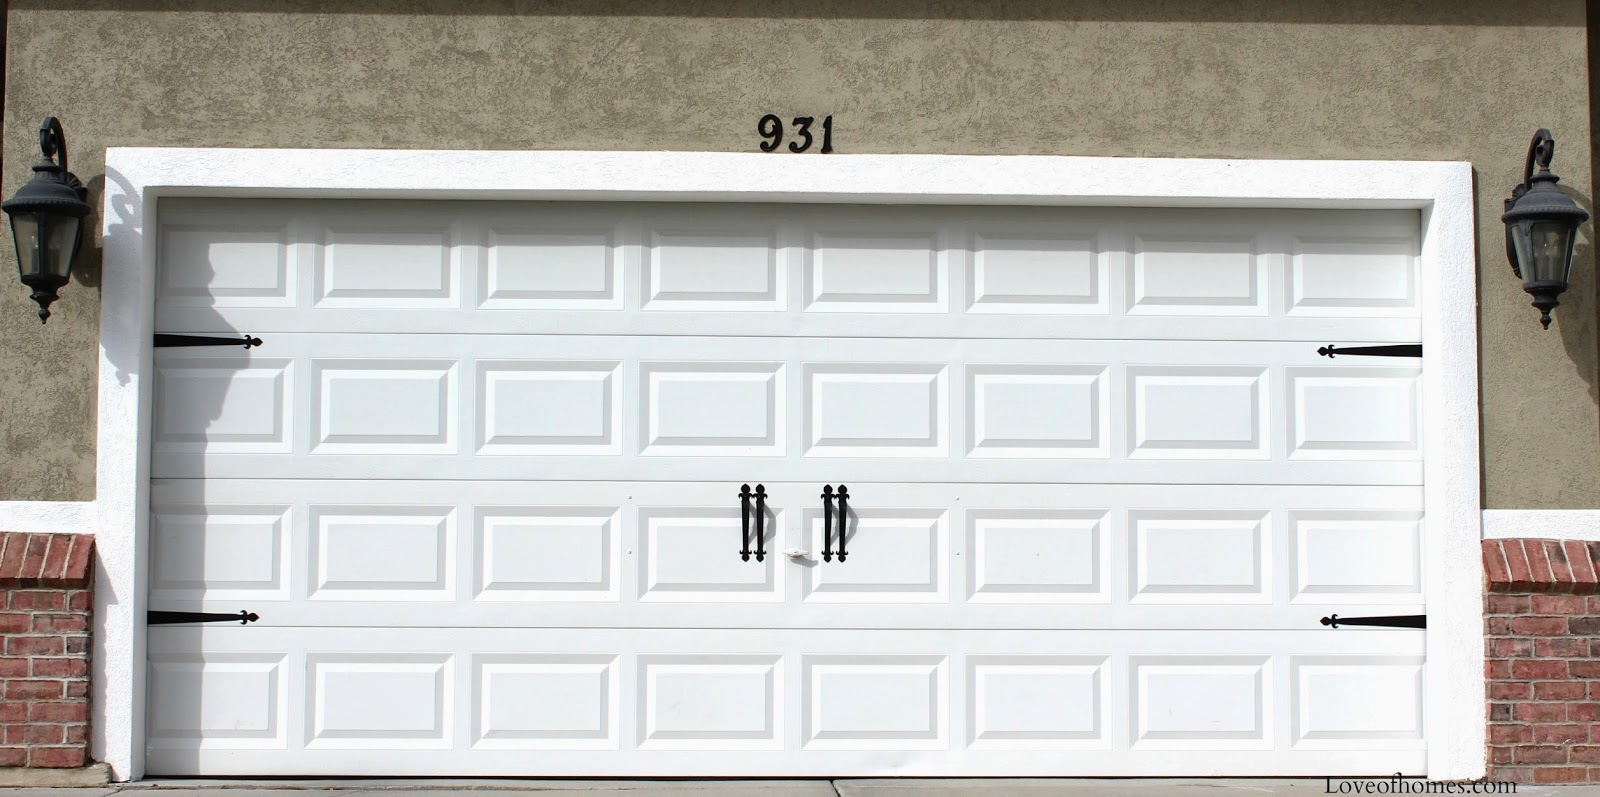 Love Of Homes Adding Hardware To Your Garage Doors